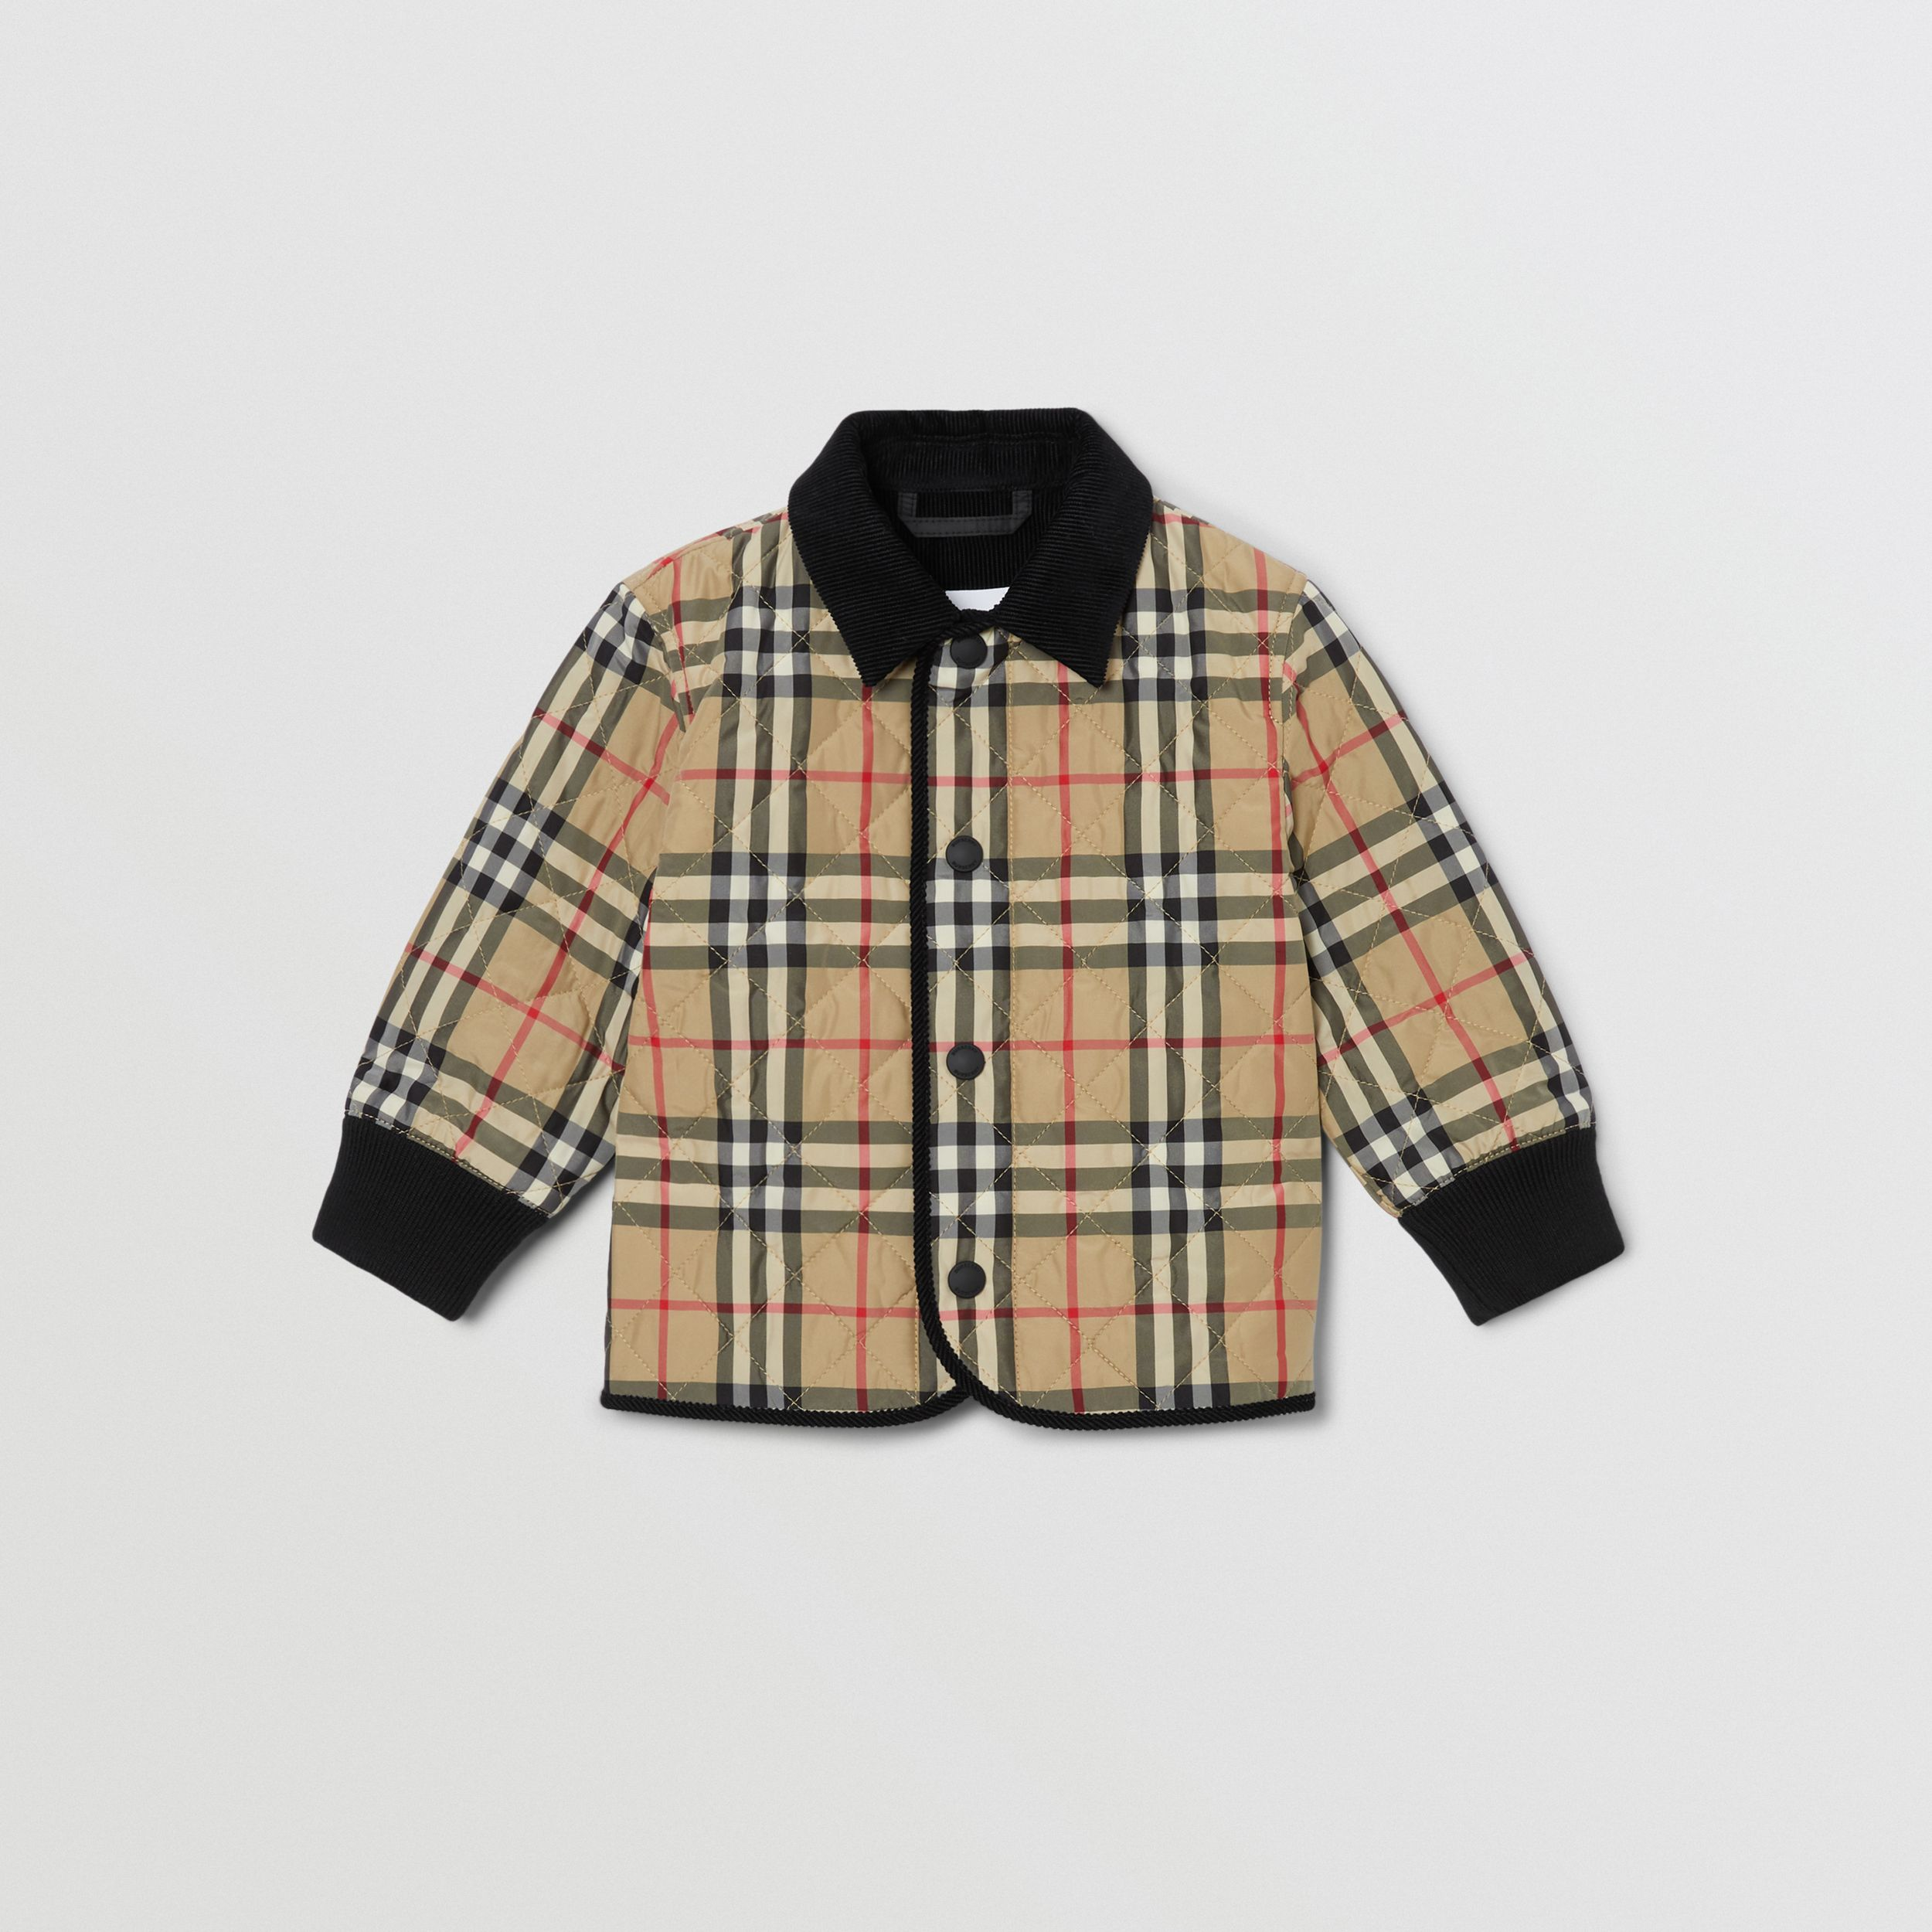 Corduroy Trim Vintage Check Diamond Quilted Jacket in Archive Beige - Children | Burberry Canada - 1